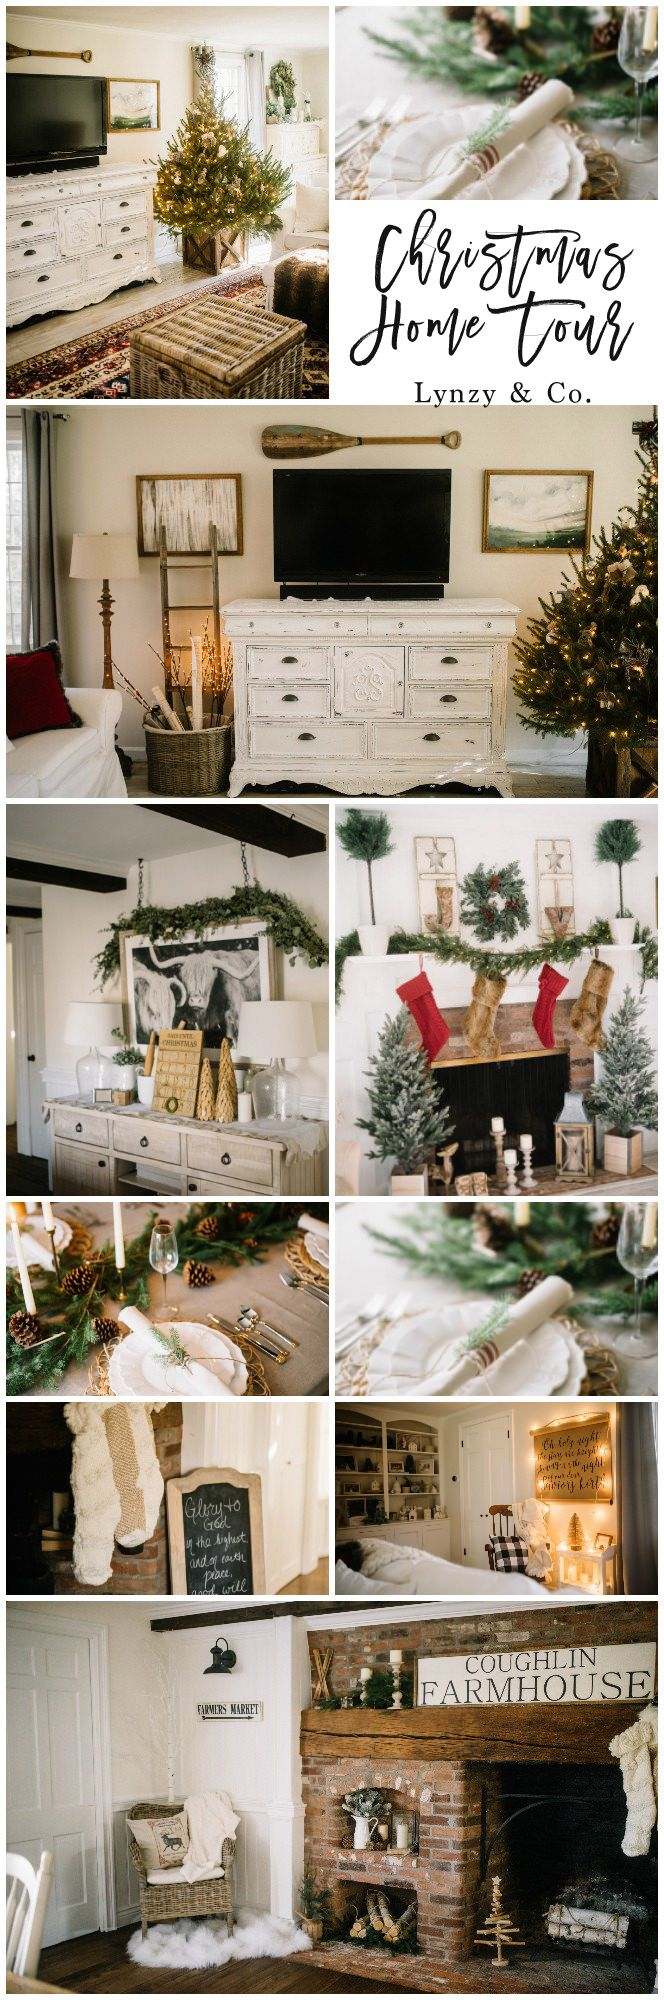 Our Christmas Home Tour // Lynzy & Co. // How to Decorate Your Home for Christmas